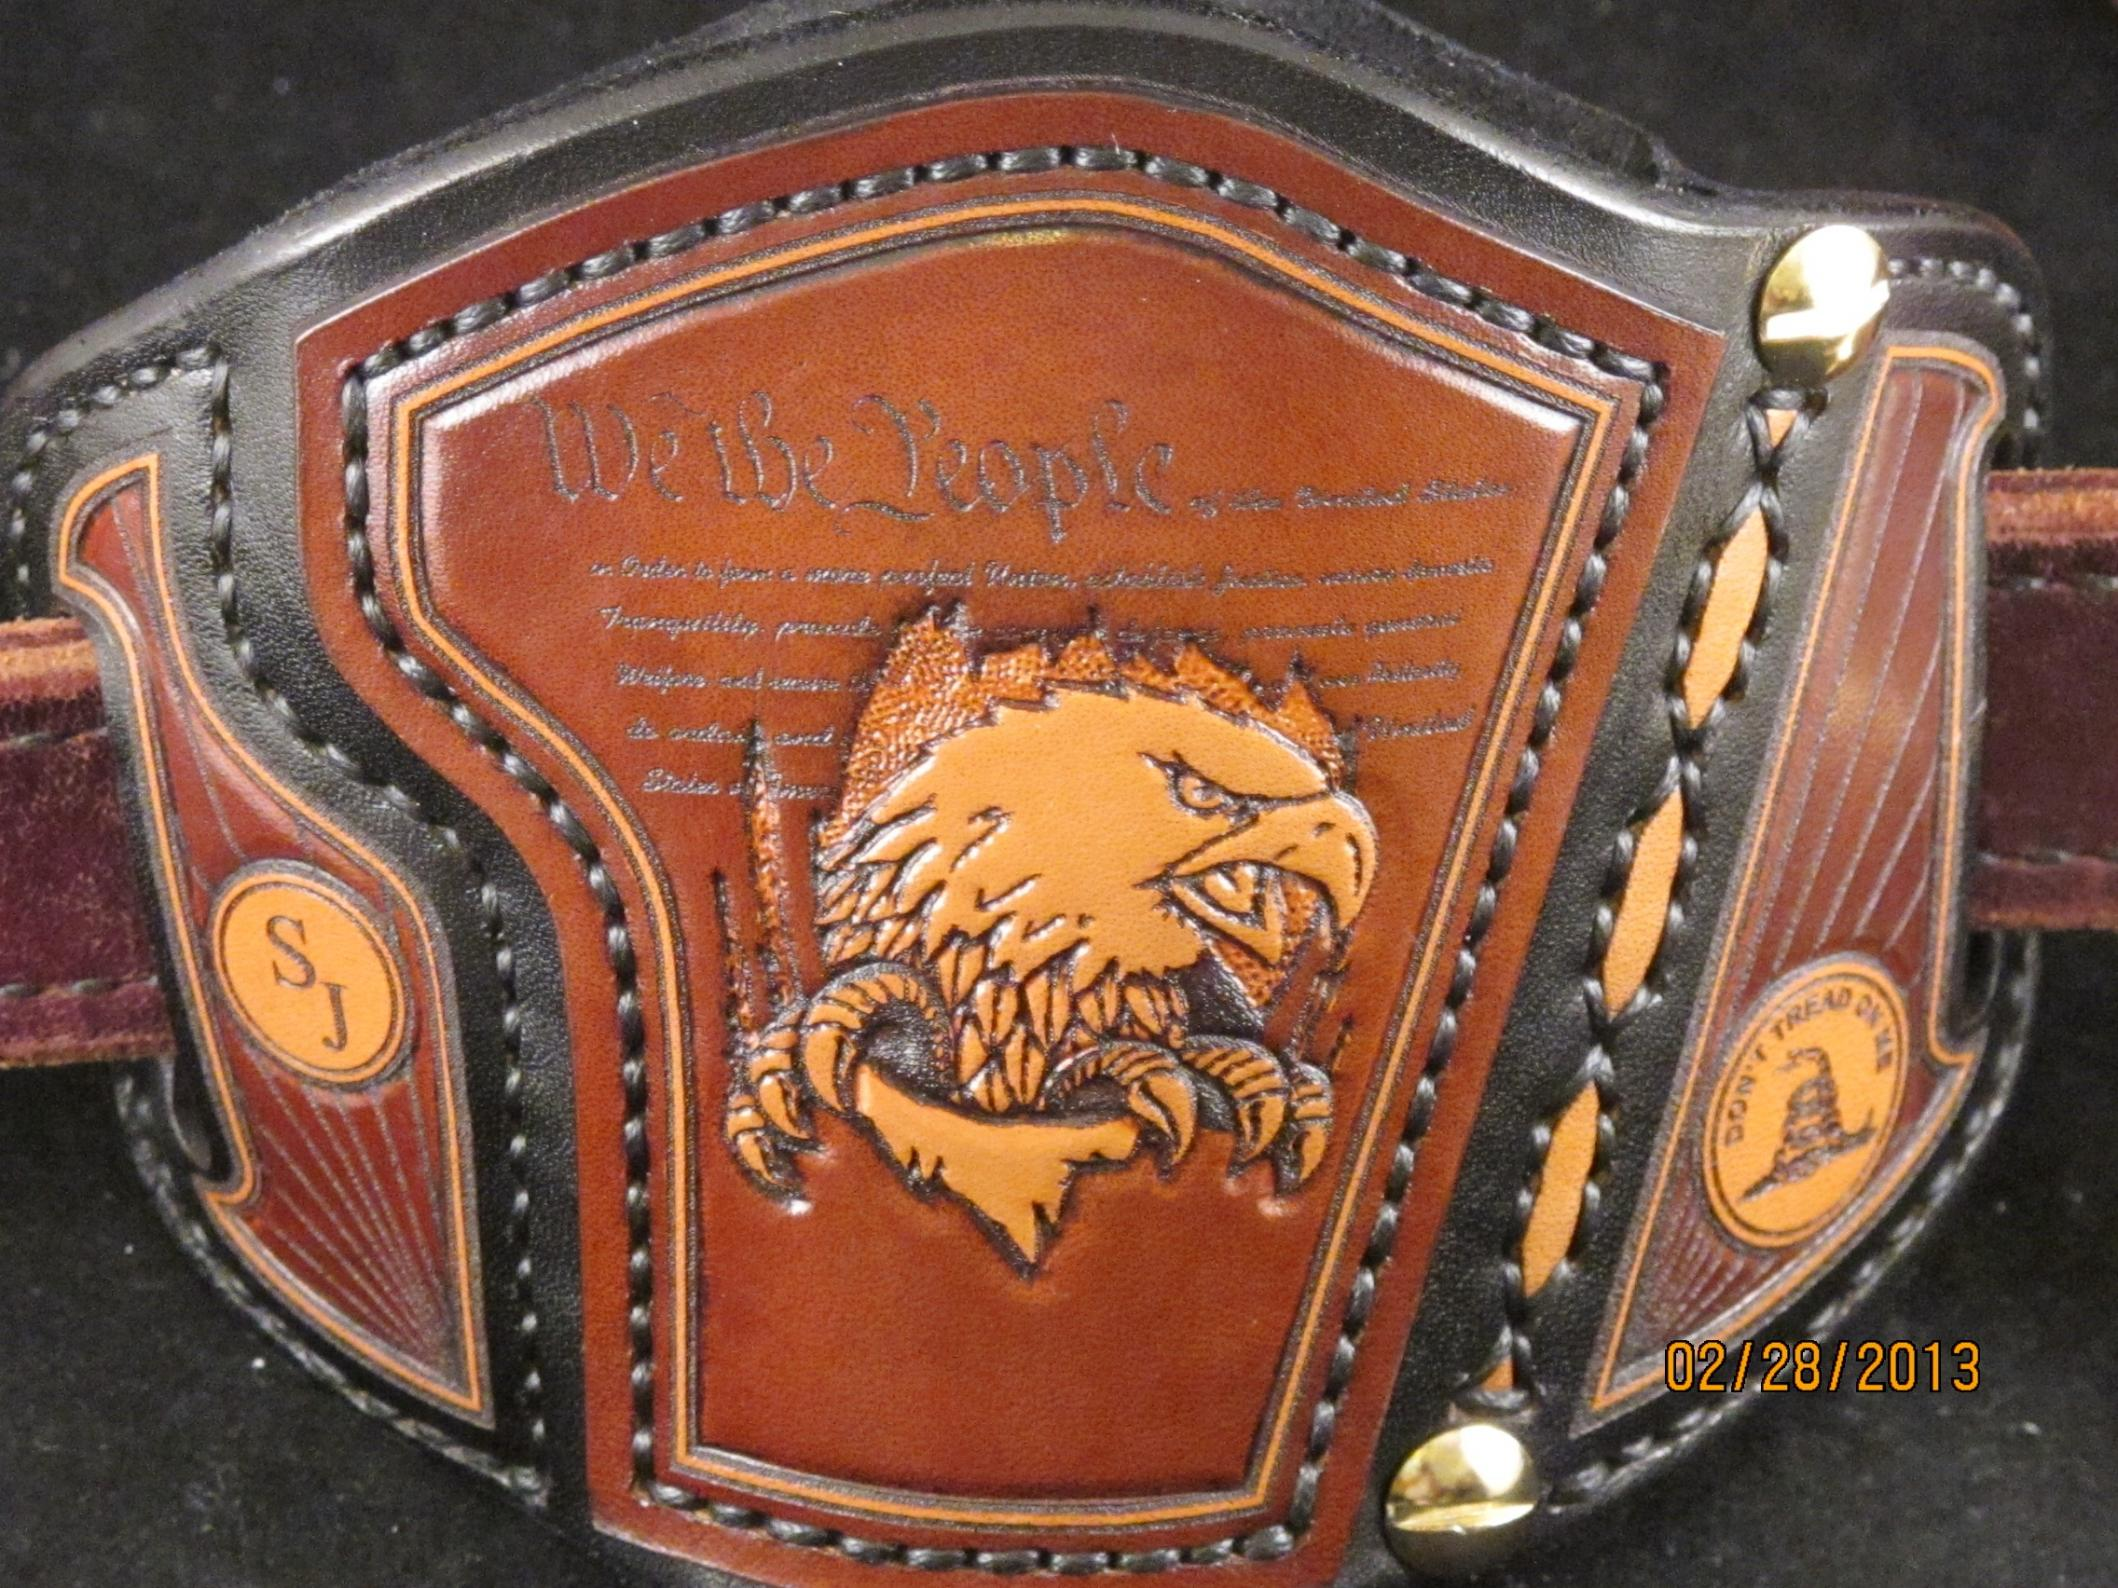 Leather Holster Experts - why some so expensive ???-image.jpg